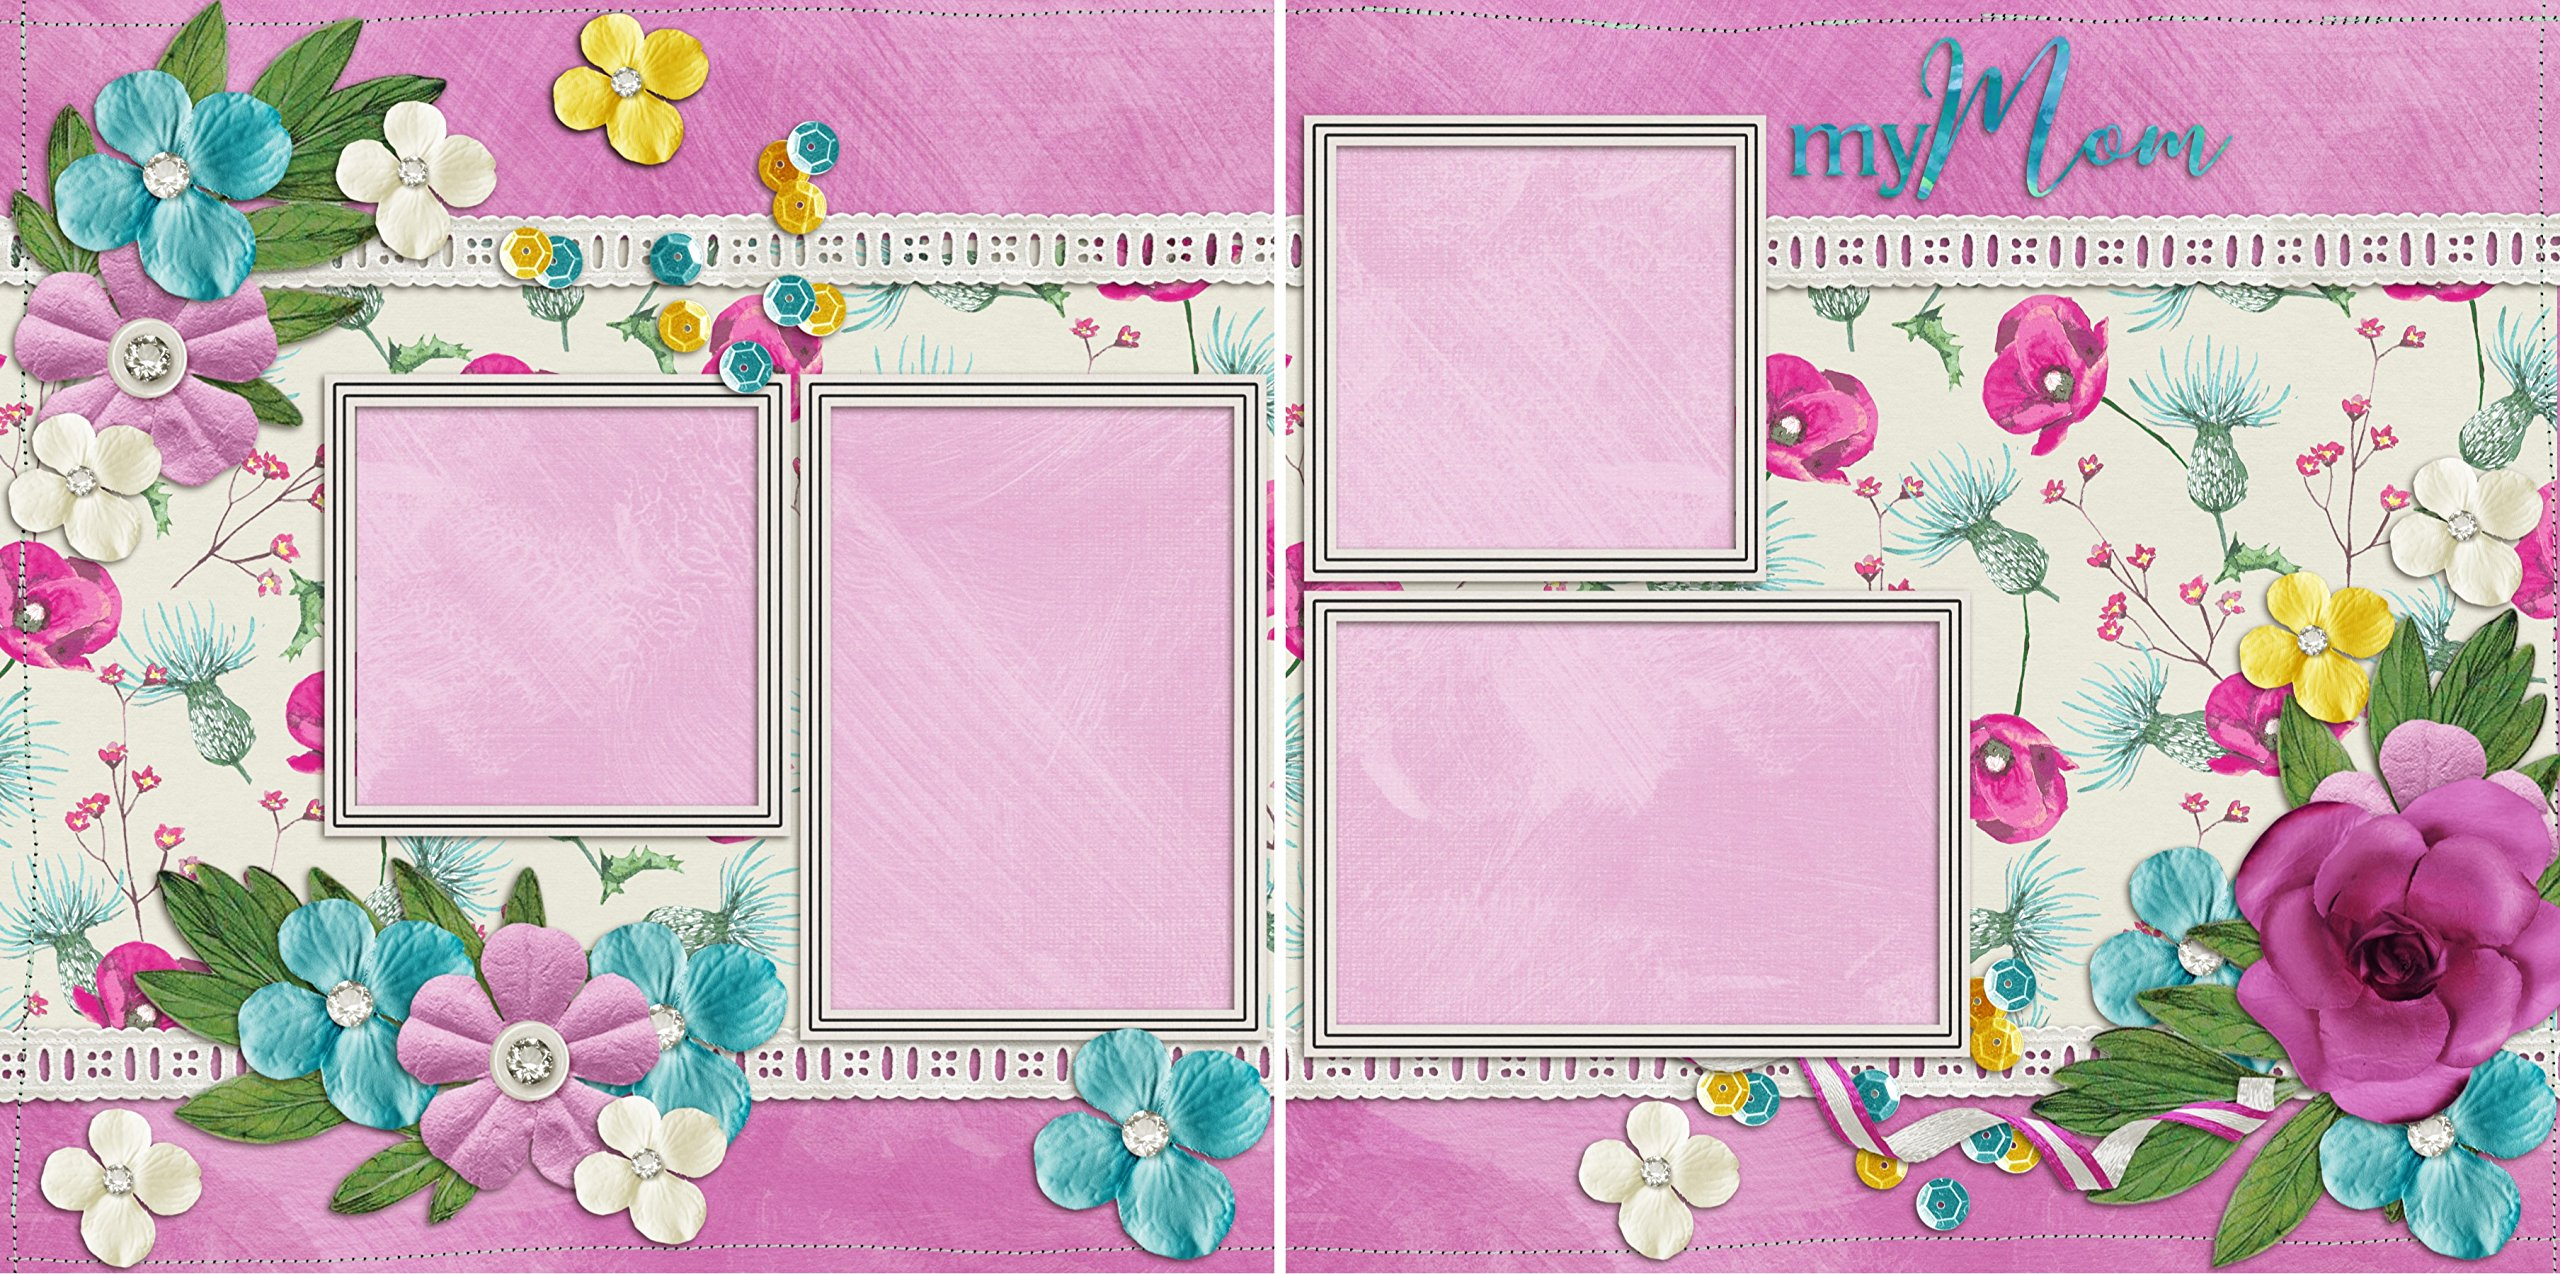 All Seasons Holidays Scrapbook Set - 14 Double Page Layouts